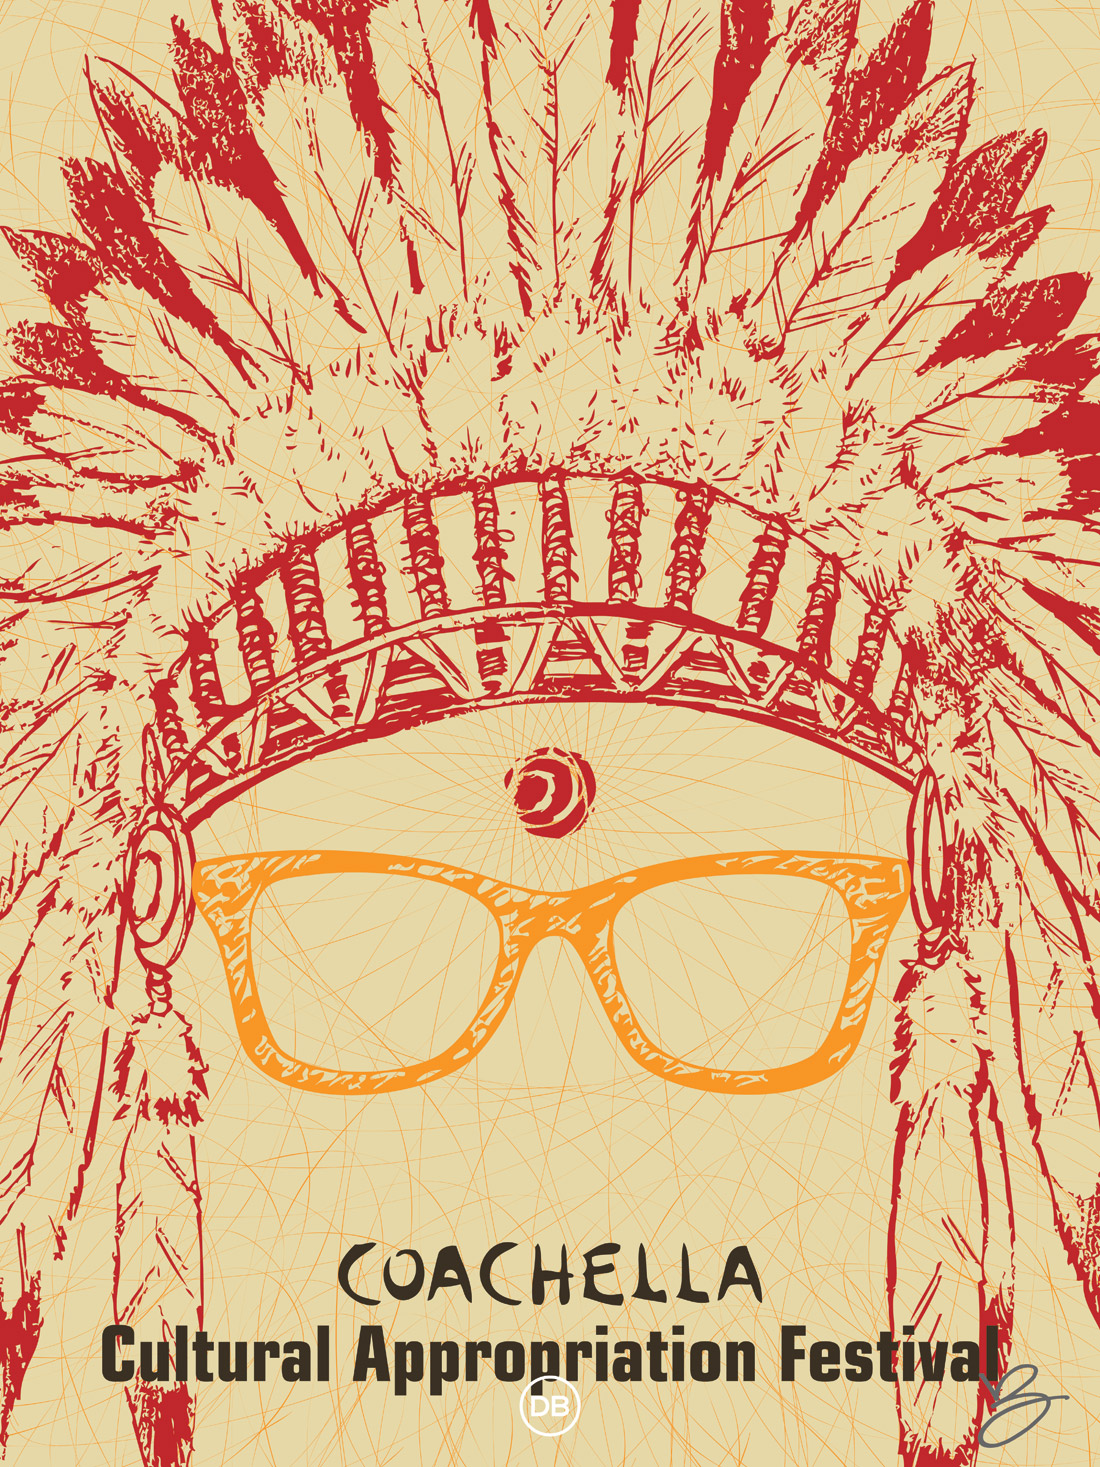 David Bernie Bindi Headdress Cultural Appropriation Coachella Indian Country 52 Week 15